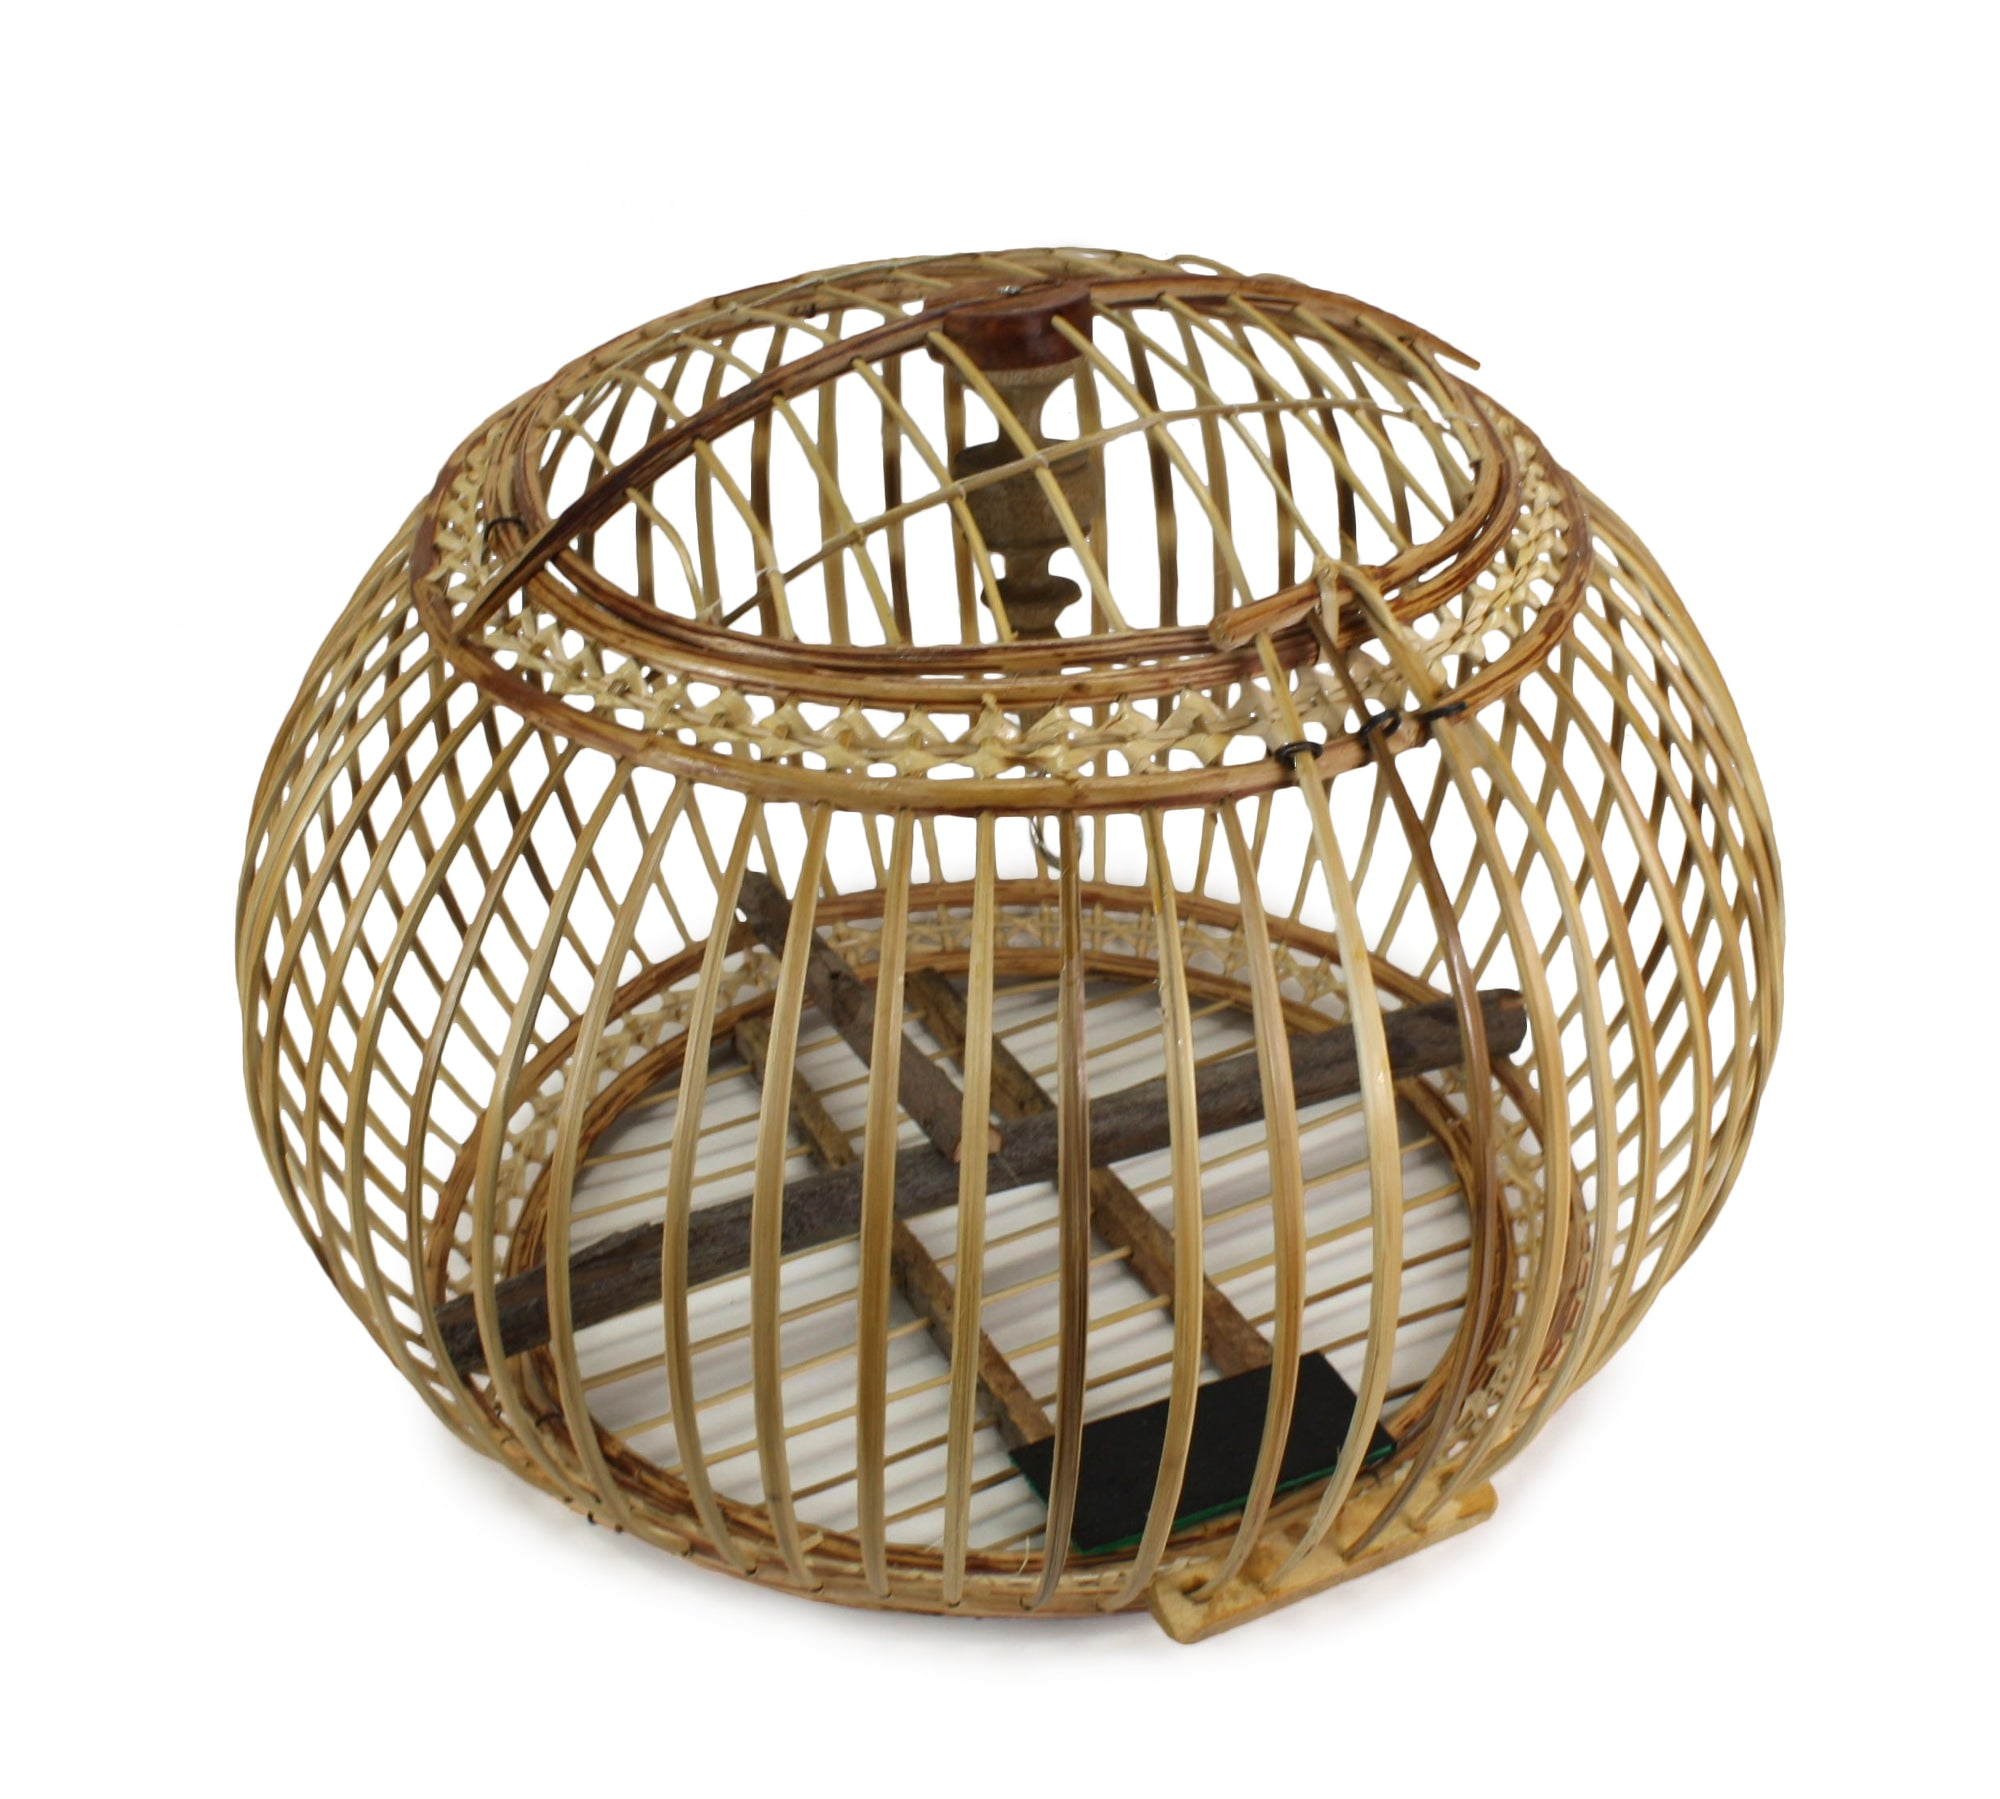 Thai Bamboo Bird Cage, 53cm x 54cm, or Light fitting - farangshop-co